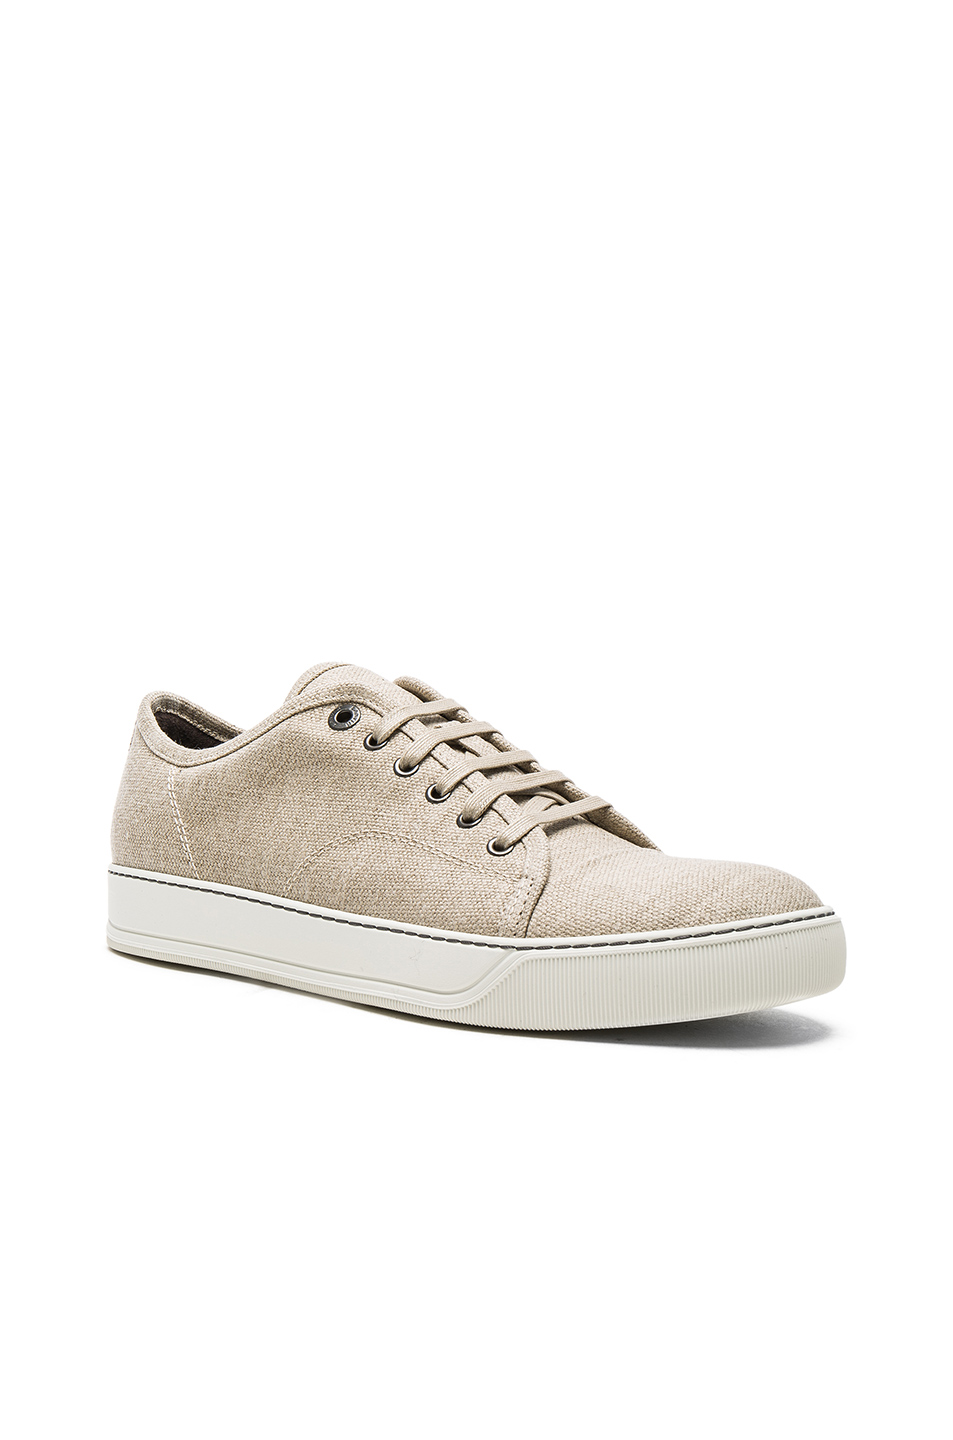 Lanvin Waxy Woven Linen Low Top Sneakers in Neutrals